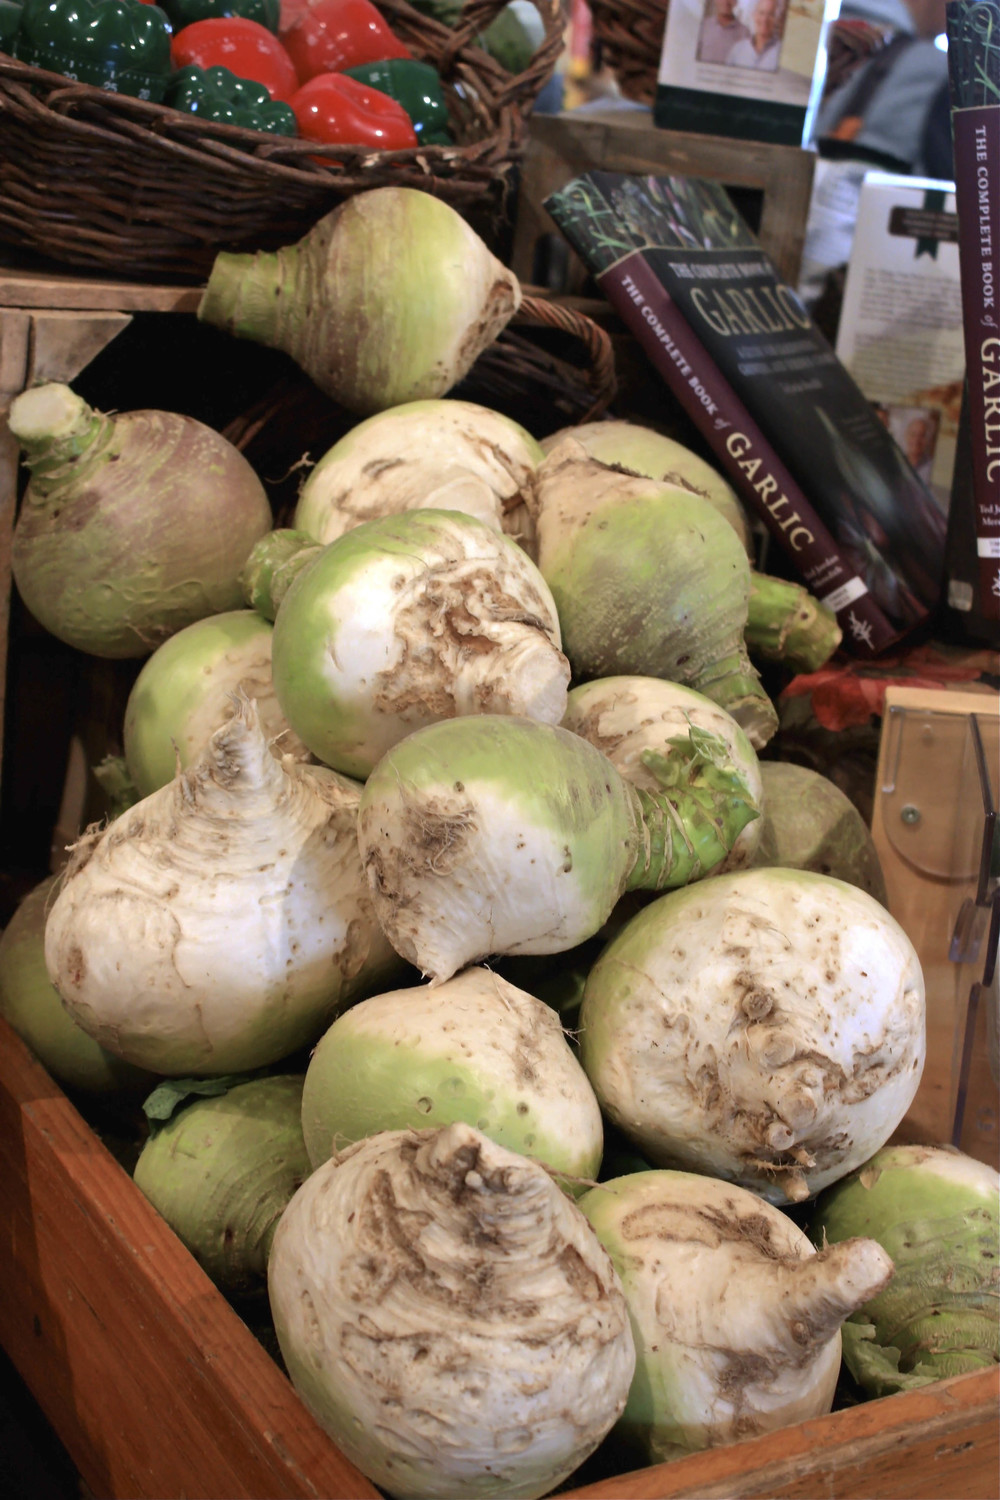 REALLY BIG turnips at Schoharie Valley Farms.